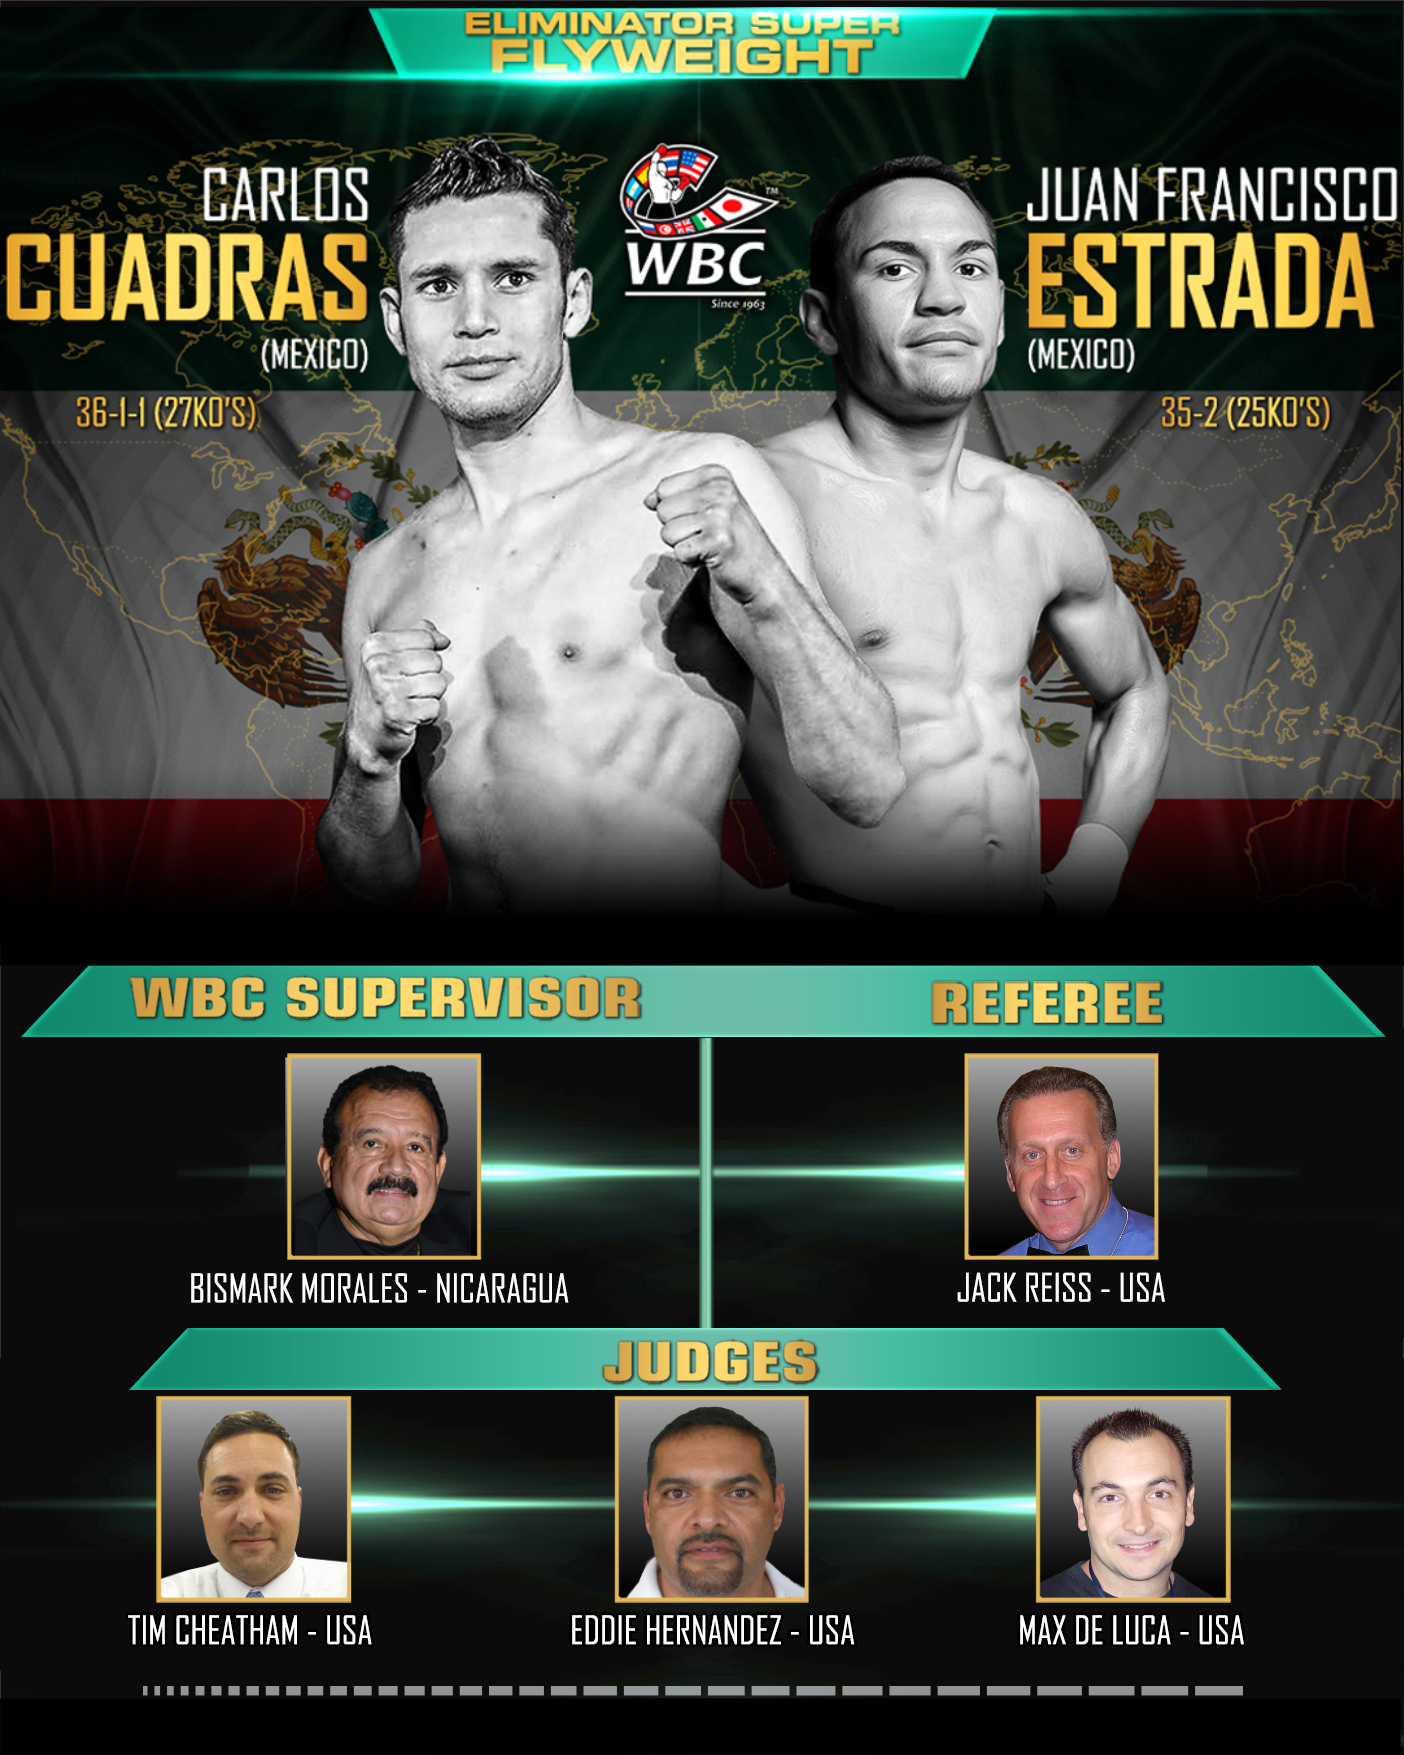 cuadras-vs-estrada-9sep2017